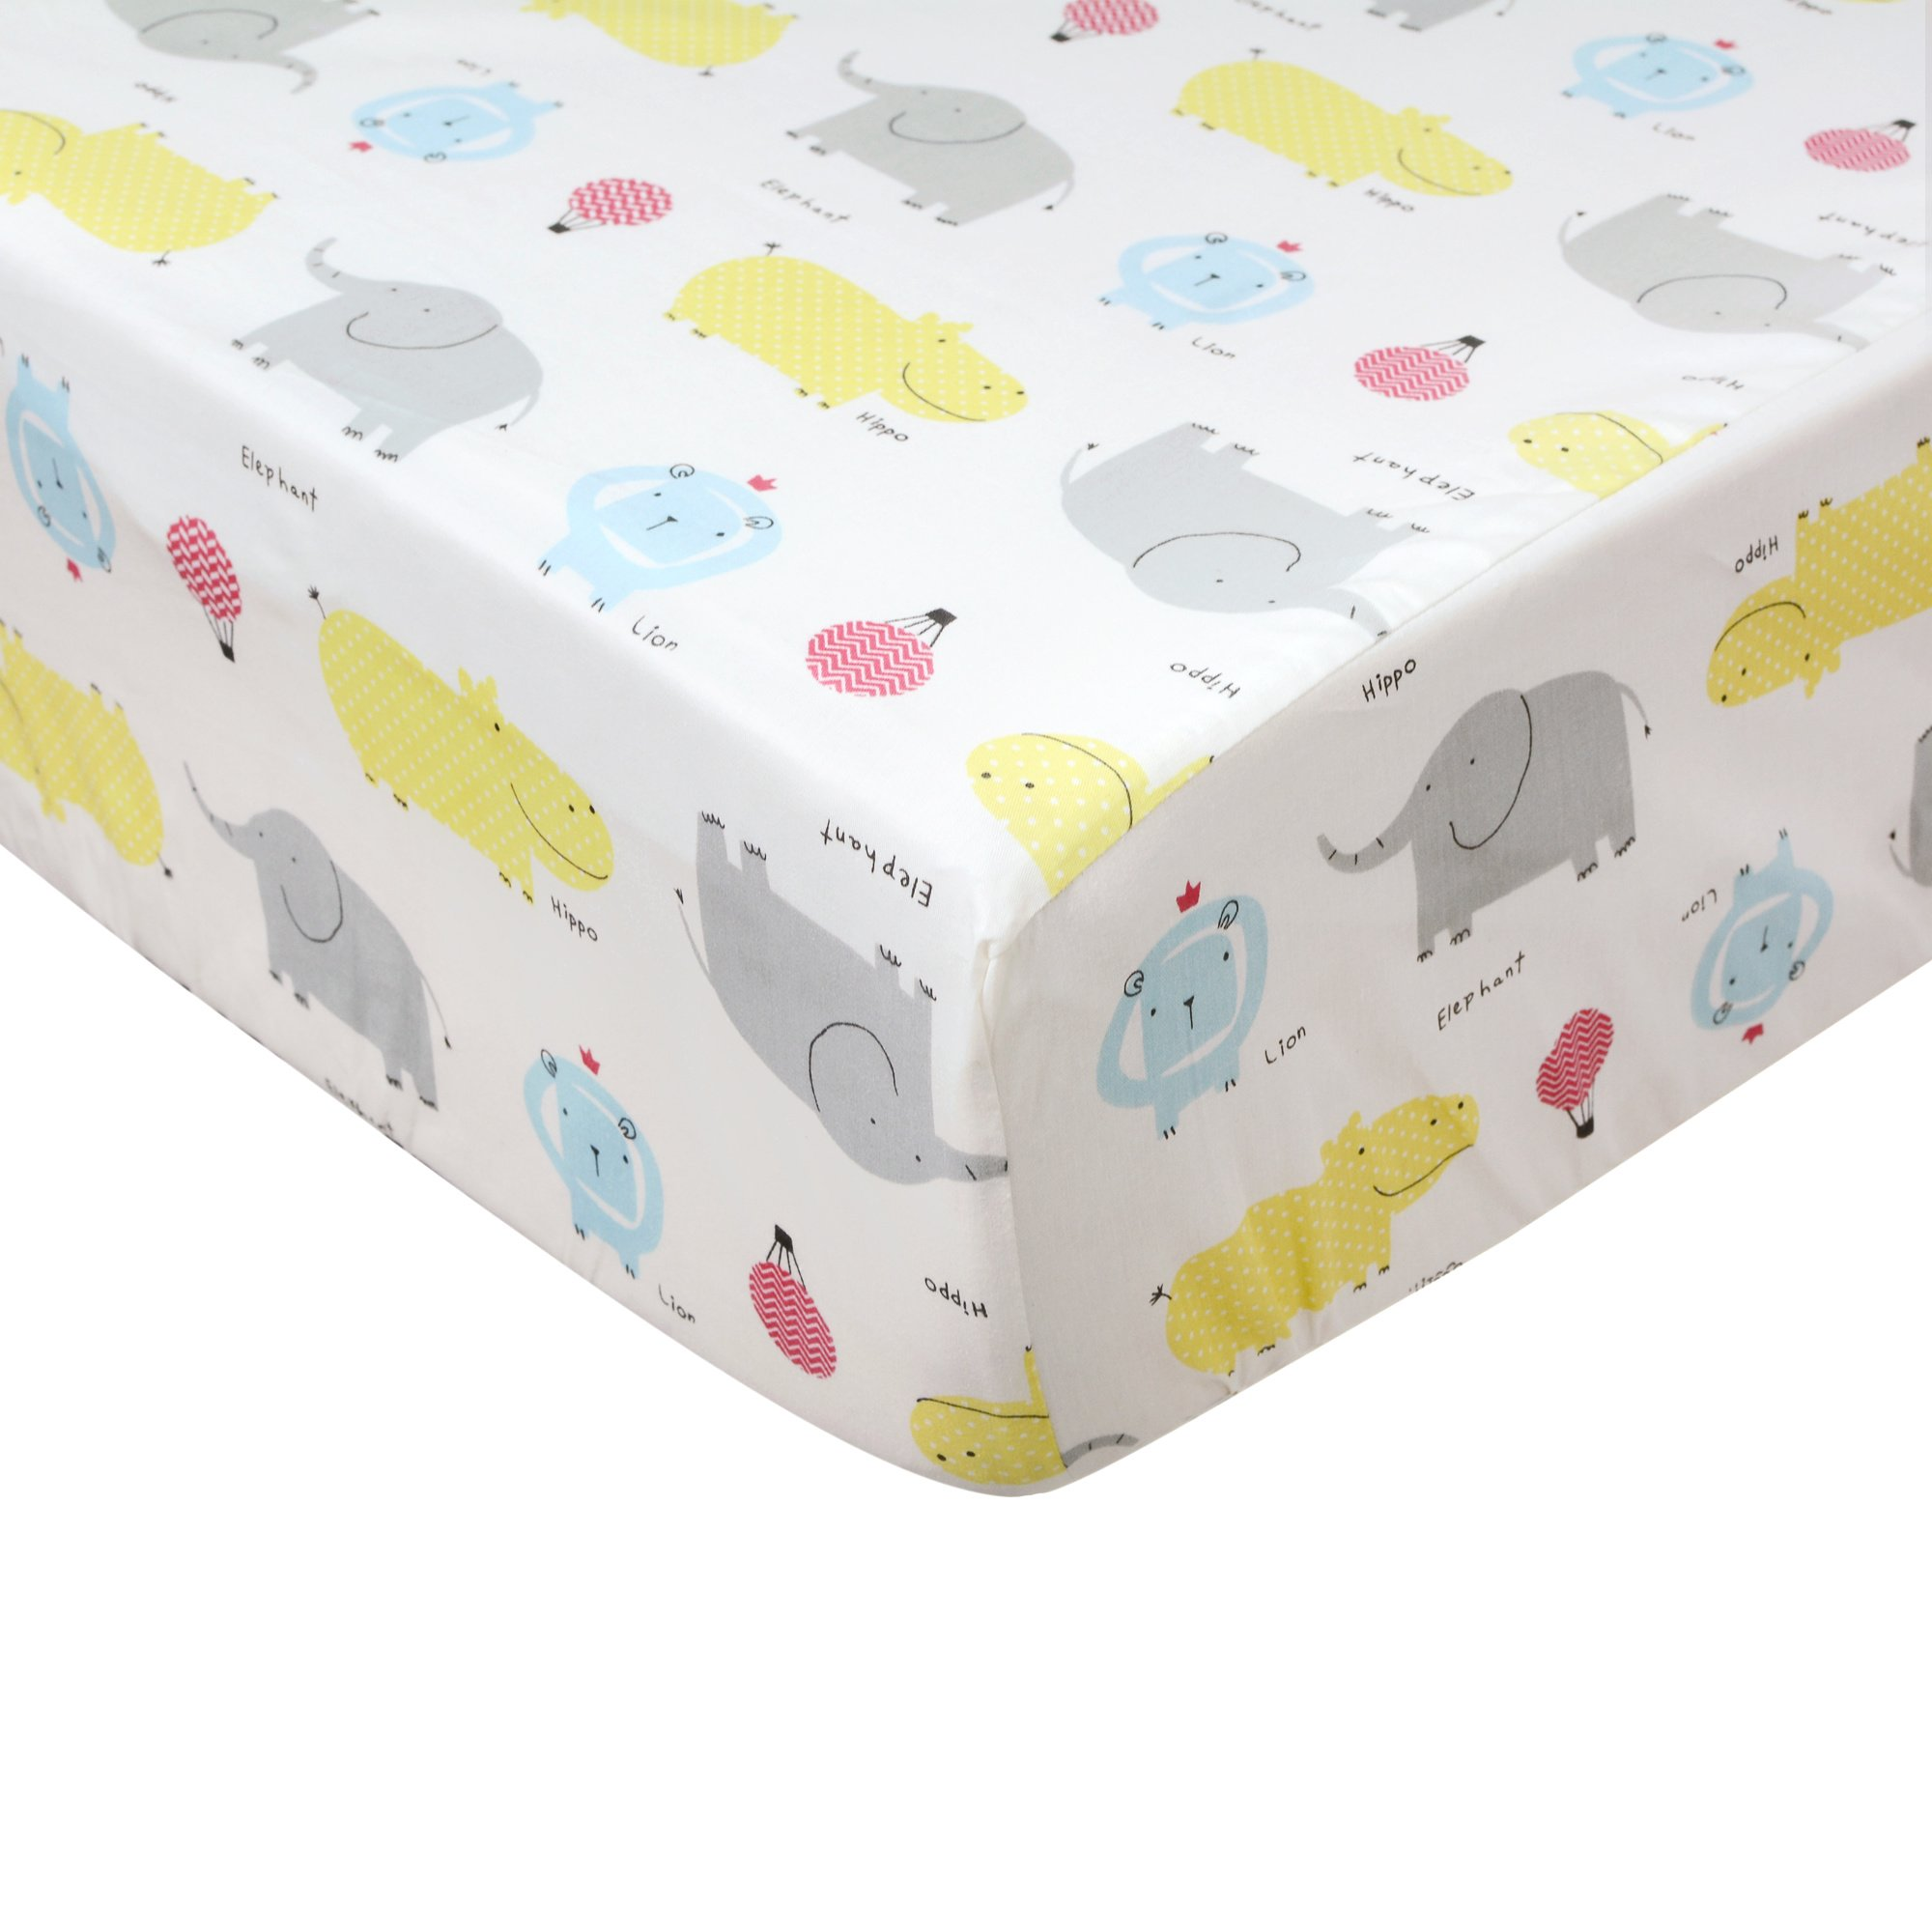 100% Cotton Crib Fitted Sheets with Elephant Hippo & Lion Woods Fitted Crib Sheet- Deluxe Quality Nursery Baby Bedding for Boy- Soft, Breathable & Durable by Brandream